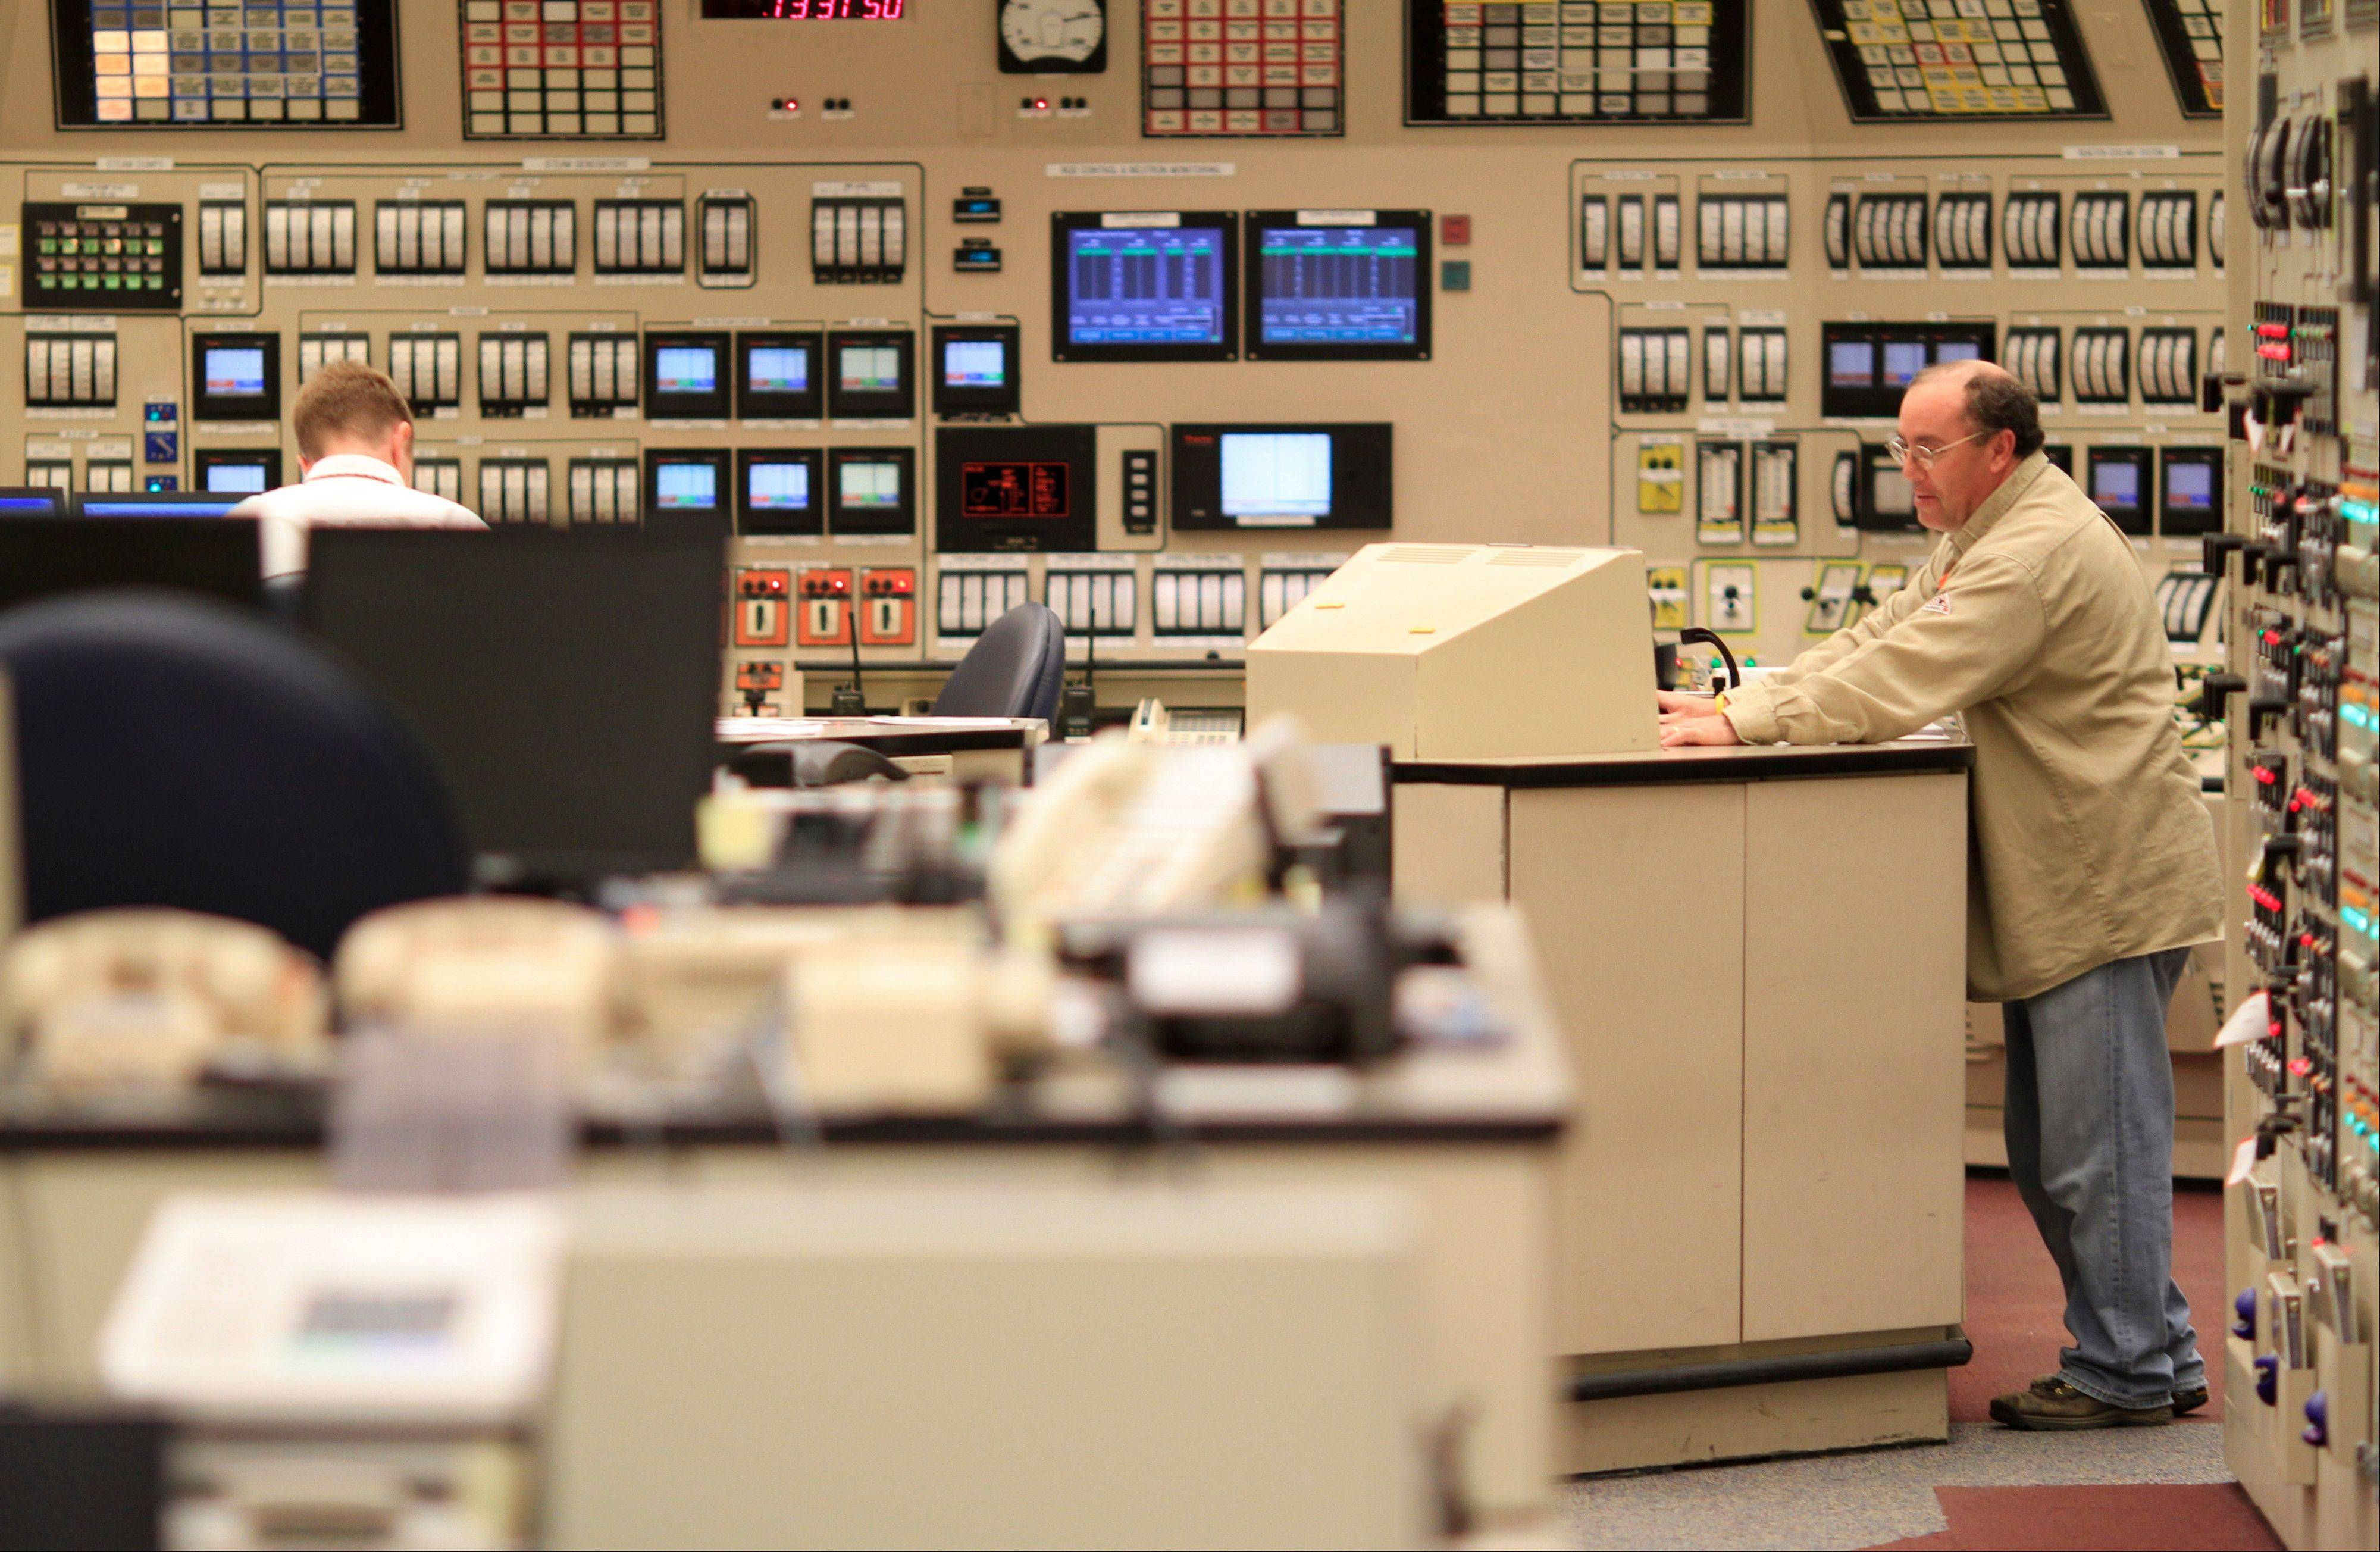 A technician watches a monitor in the Unit 1 control room at Watts Bar Nuclear Power Plant in Spring City, Tenn., on April 5. The Tennessee Valley Authority has concluded that construction of the power plant, initially budgeted for $2.5 billion, is about three years behind schedule and will cost up to $2 billion more. Licensing delay charges, soaring construction expenses and installation glitches have also driven up the costs of nuclear plants in Georgia and South Carolina, according to an Associated Press analysis of public records and regulatory filings.